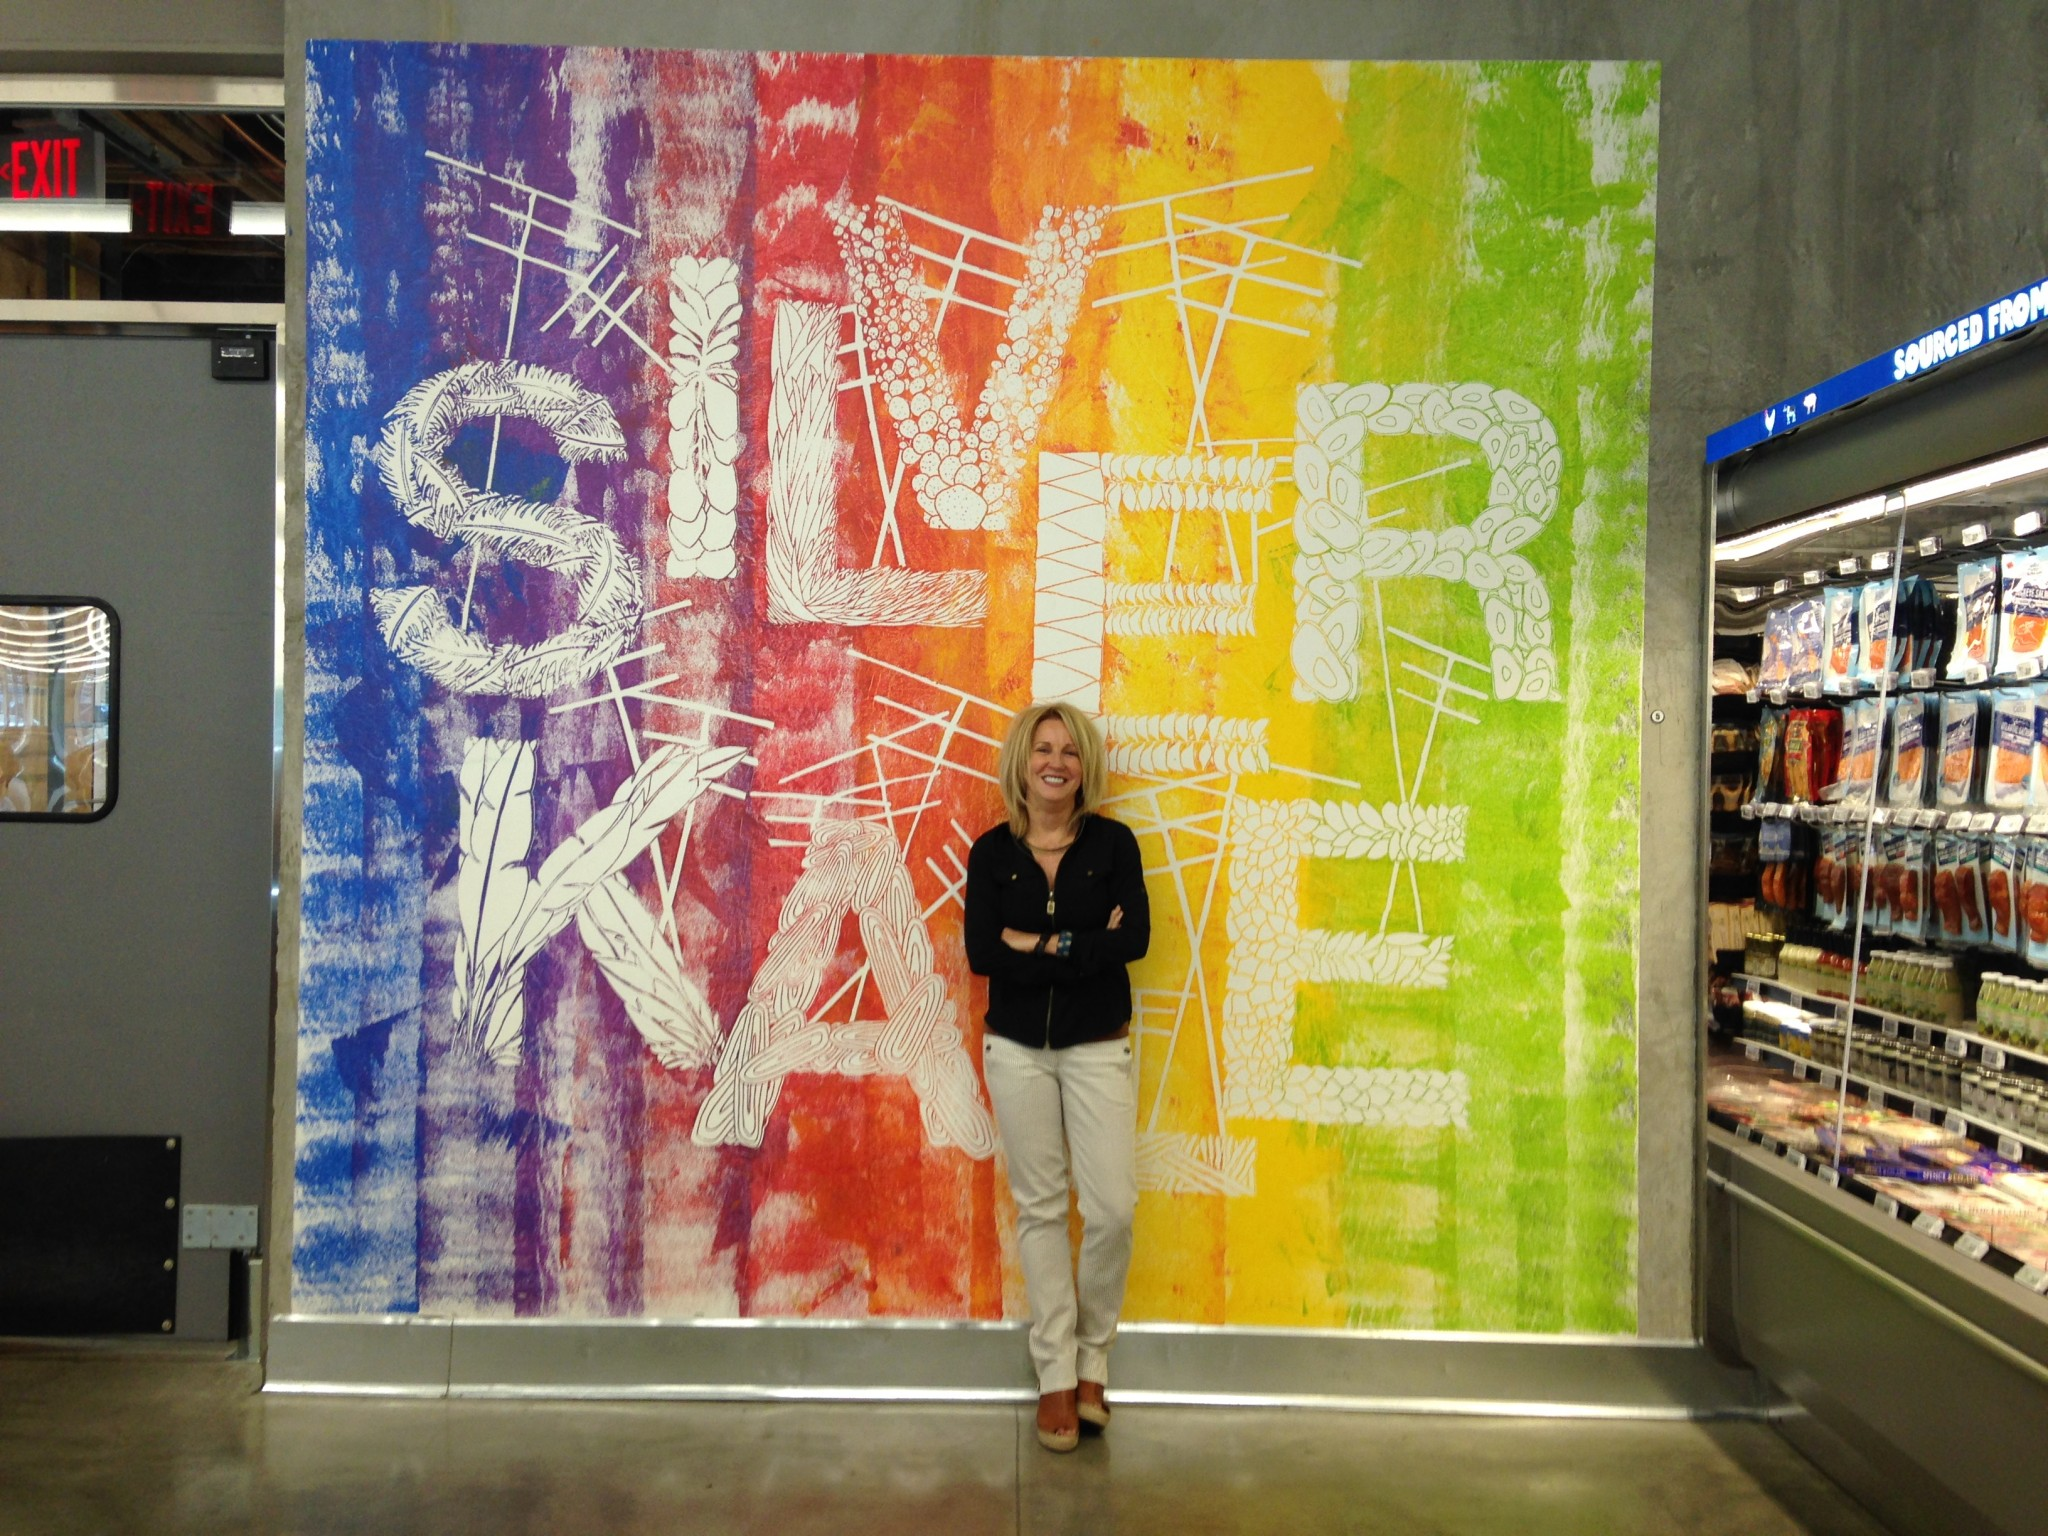 Deborah English poses in front of her Silver Kale mural at the 365 by Whole Foods Market. Photo by Avishay Artsy.